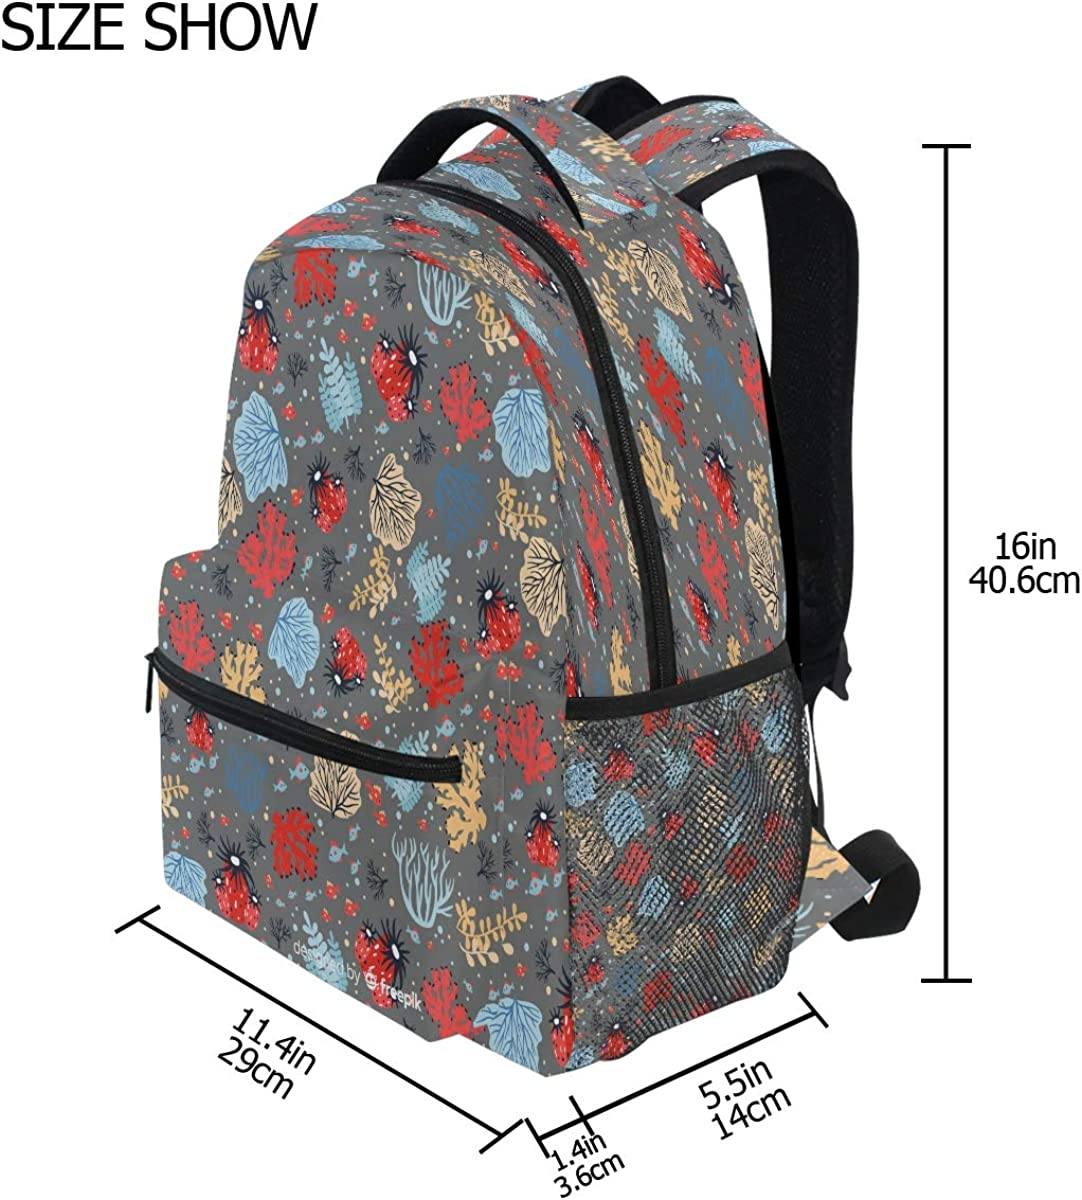 Laptop Backpack Boys Grils Flat Coral School Bookbags Computer Daypack for Travel Hiking Camping